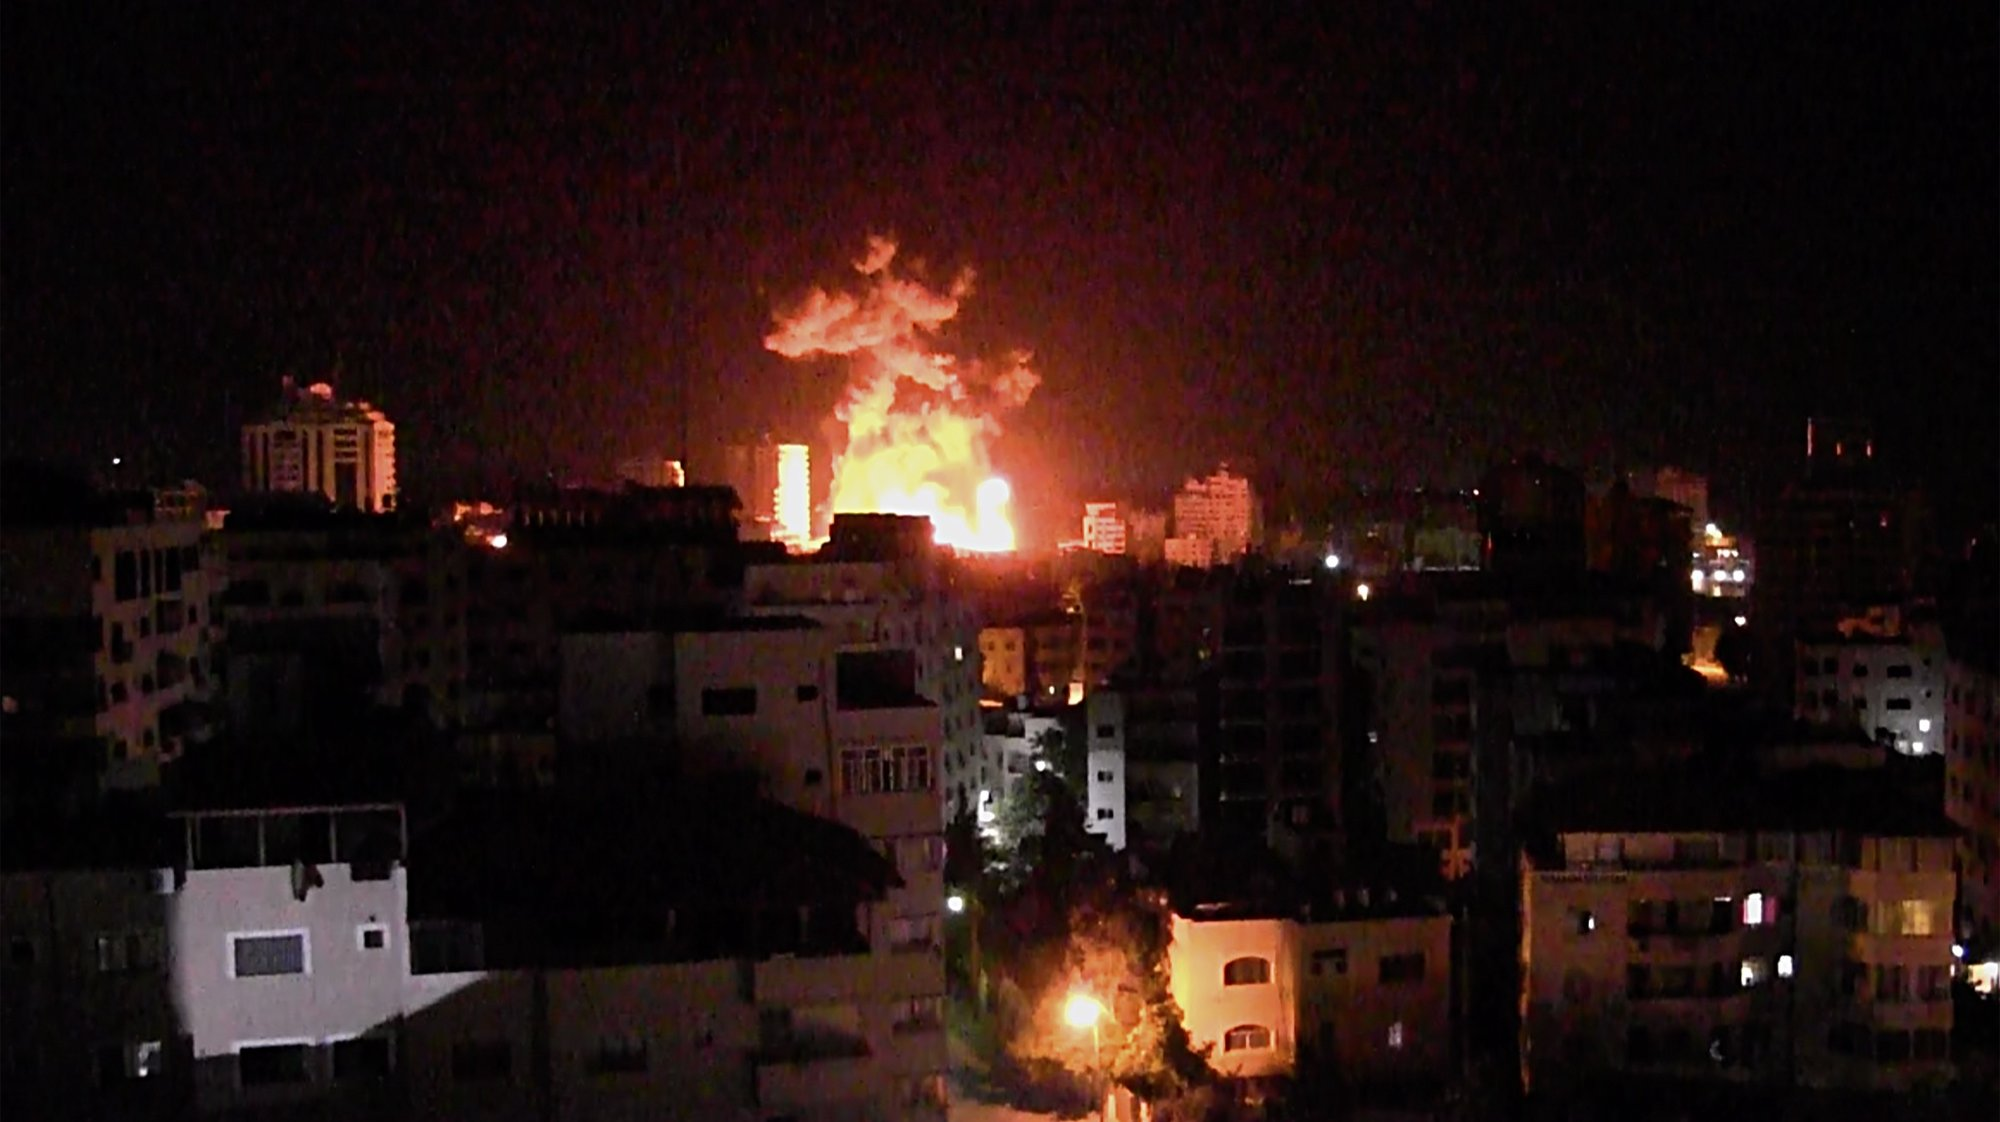 epaselect epa09206071 Smoke rises after an Israeli air strike hits in Gaza City, 17 May 2021. In response to days of violent confrontations between Israeli security forces and Palestinians in Jerusalem, various Palestinian militants factions in Gaza launched rocket attacks since 10 May that killed at least ten Israelis to date. According to the Palestinian Ministry of Health, at least 192 Palestinians, including 58 children, were killed in the recent retaliatory Israeli airstrikes.  EPA/MOHAMMED SABER